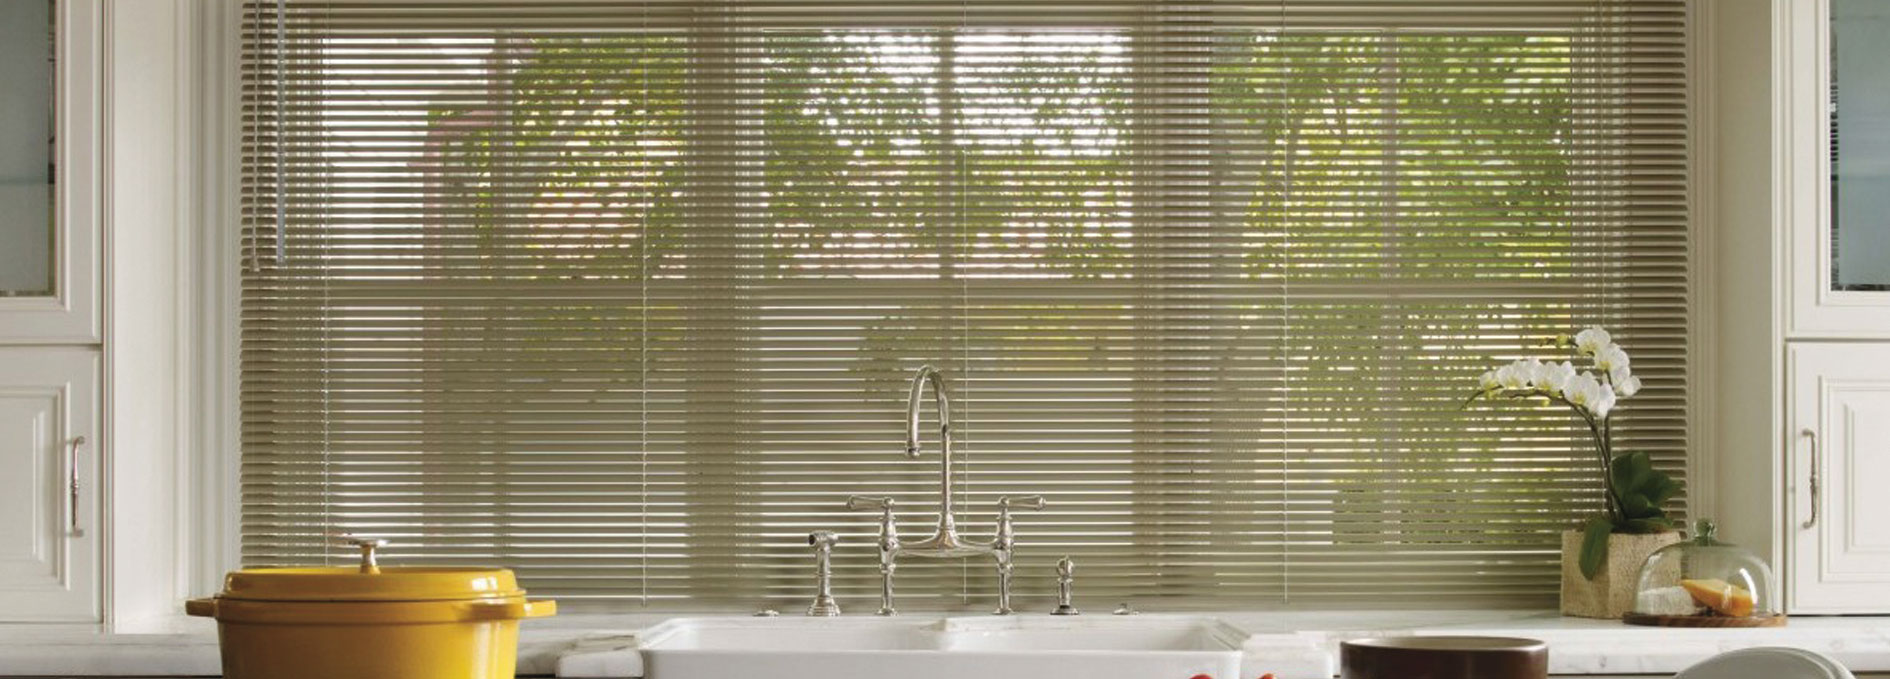 alta of window honeycomb standard tech tri blinds with on design trilight comfort cordless hc the lift flexibility in and easily your every lock operate ease shade hand trilights cl button